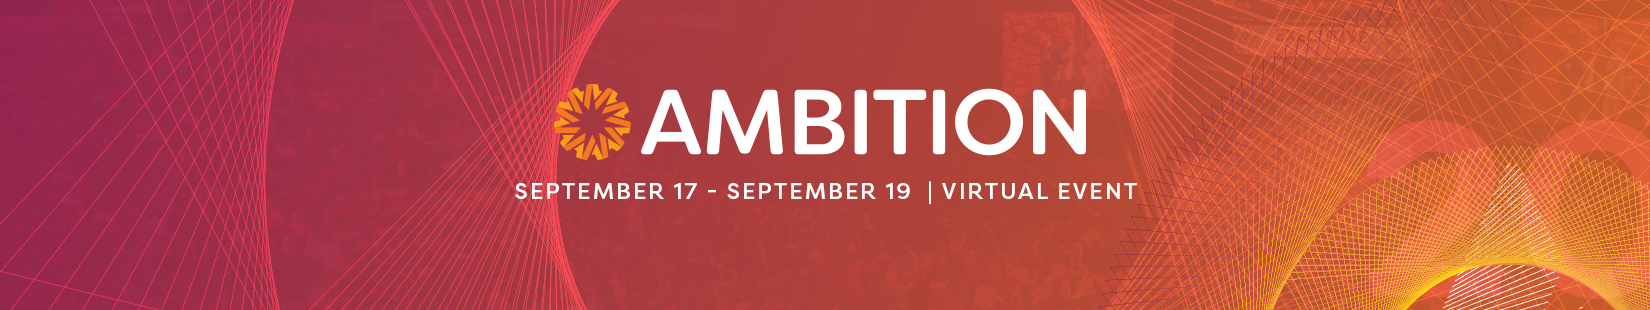 AMBITION 2020 Event Banner